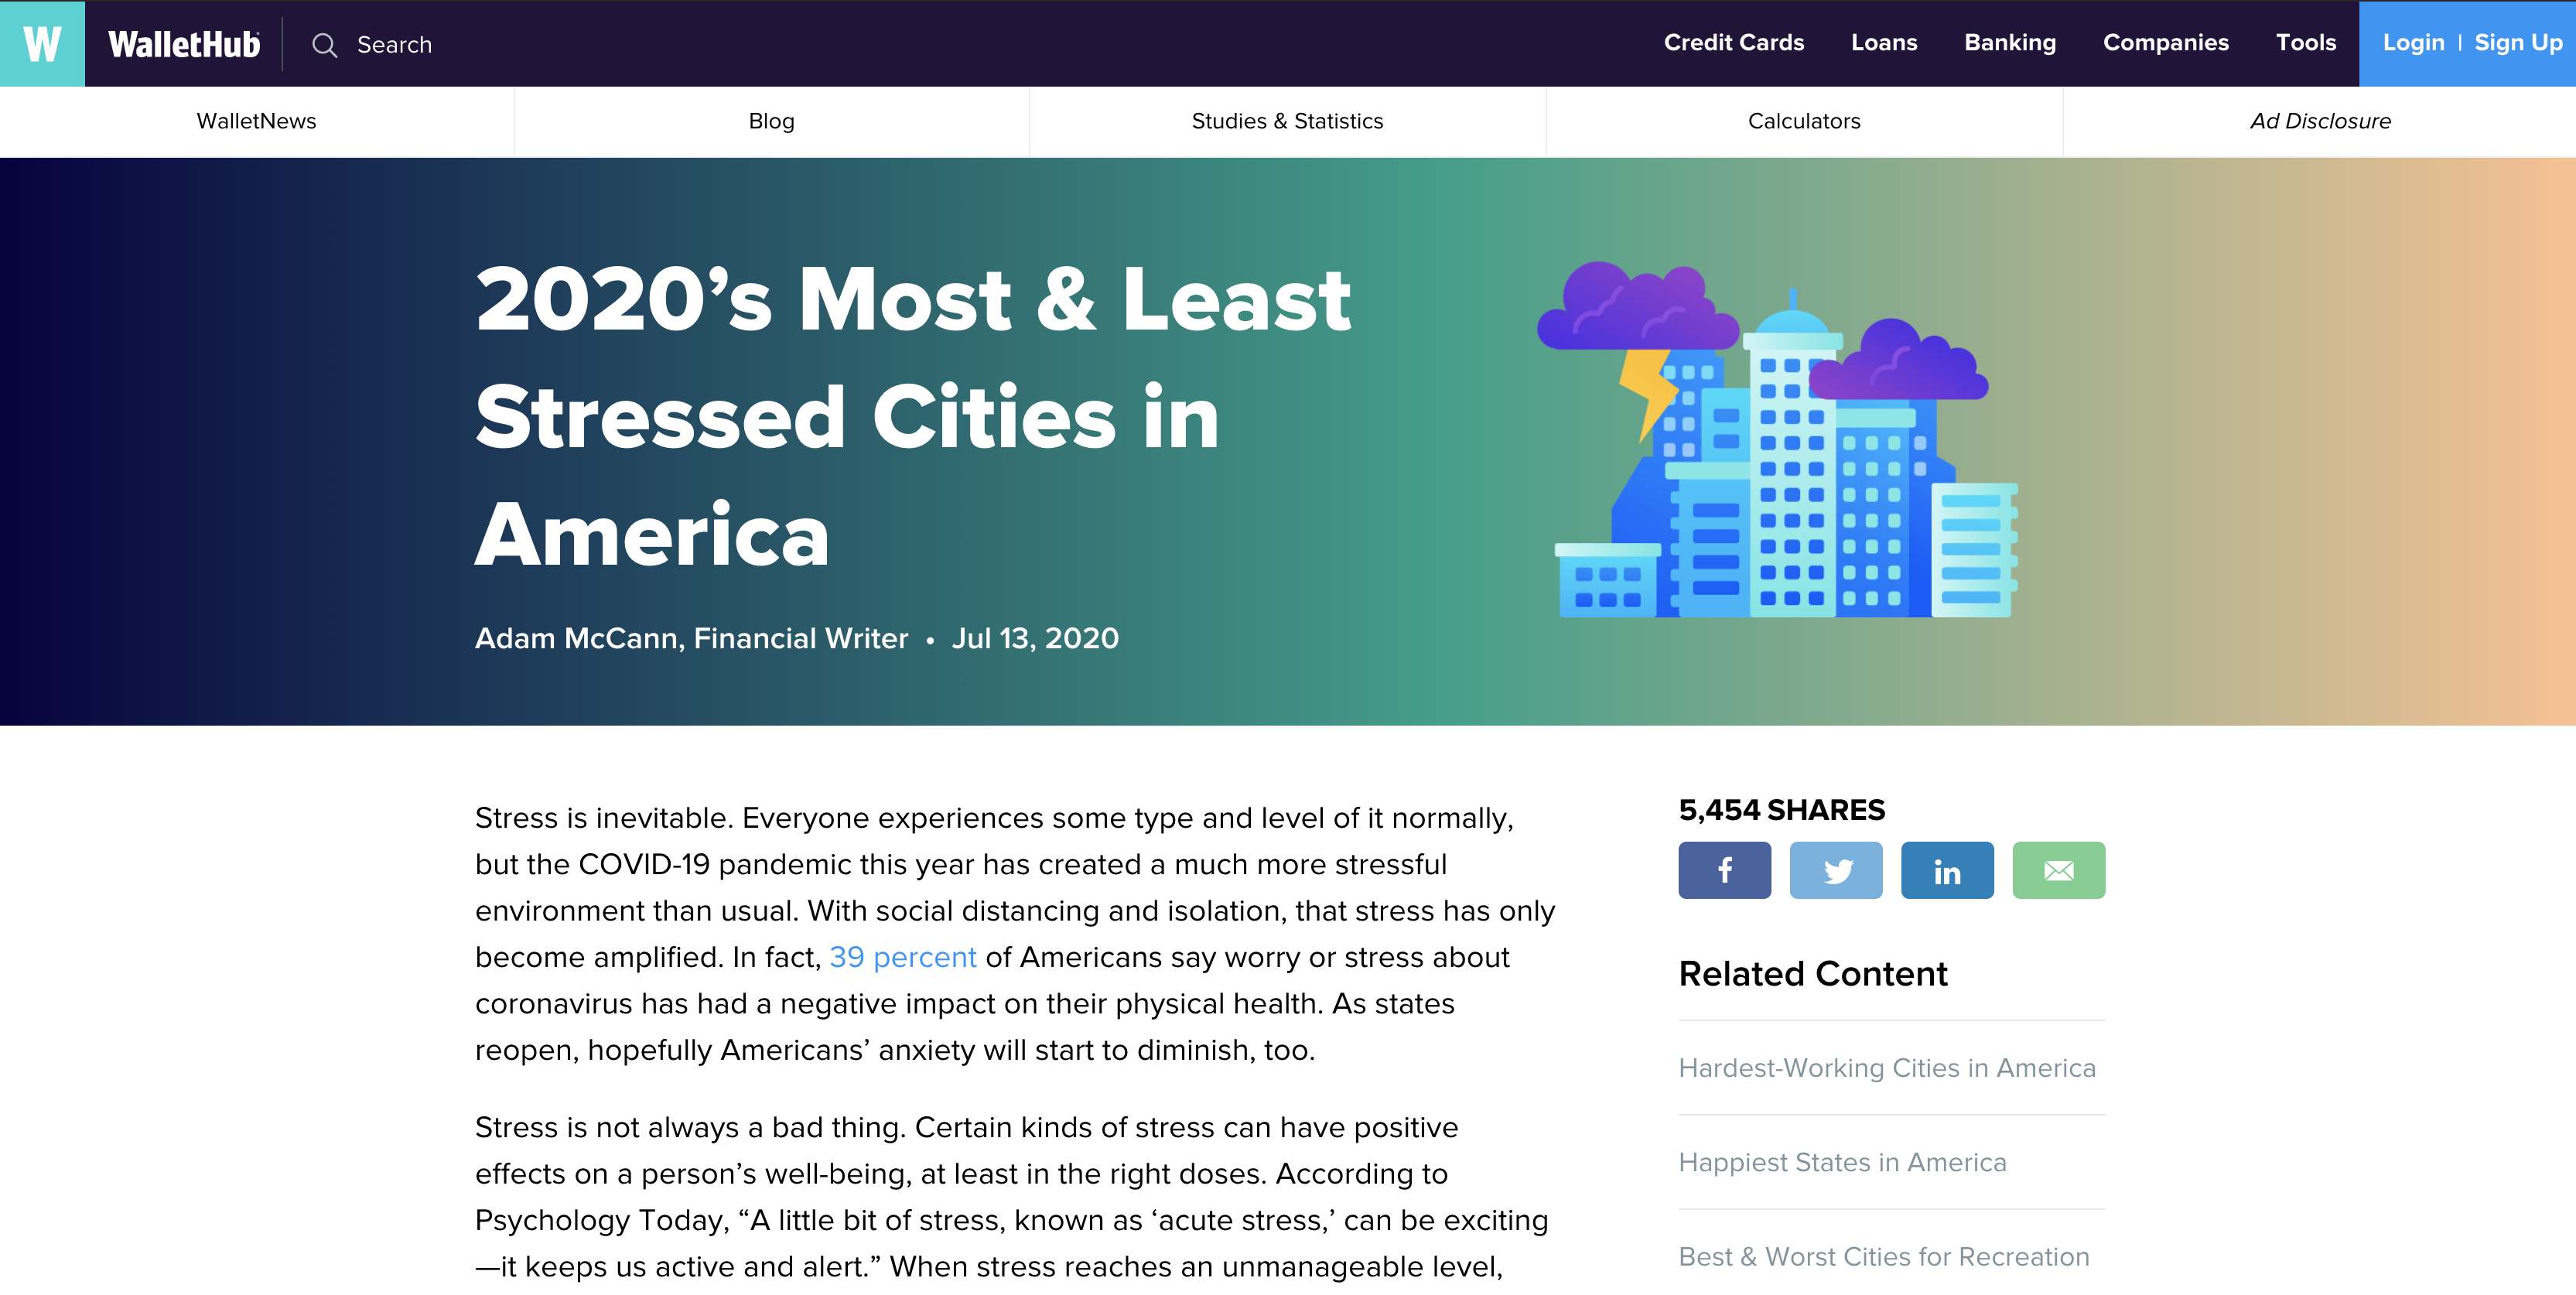 WalletHub stressed cities article screenshot